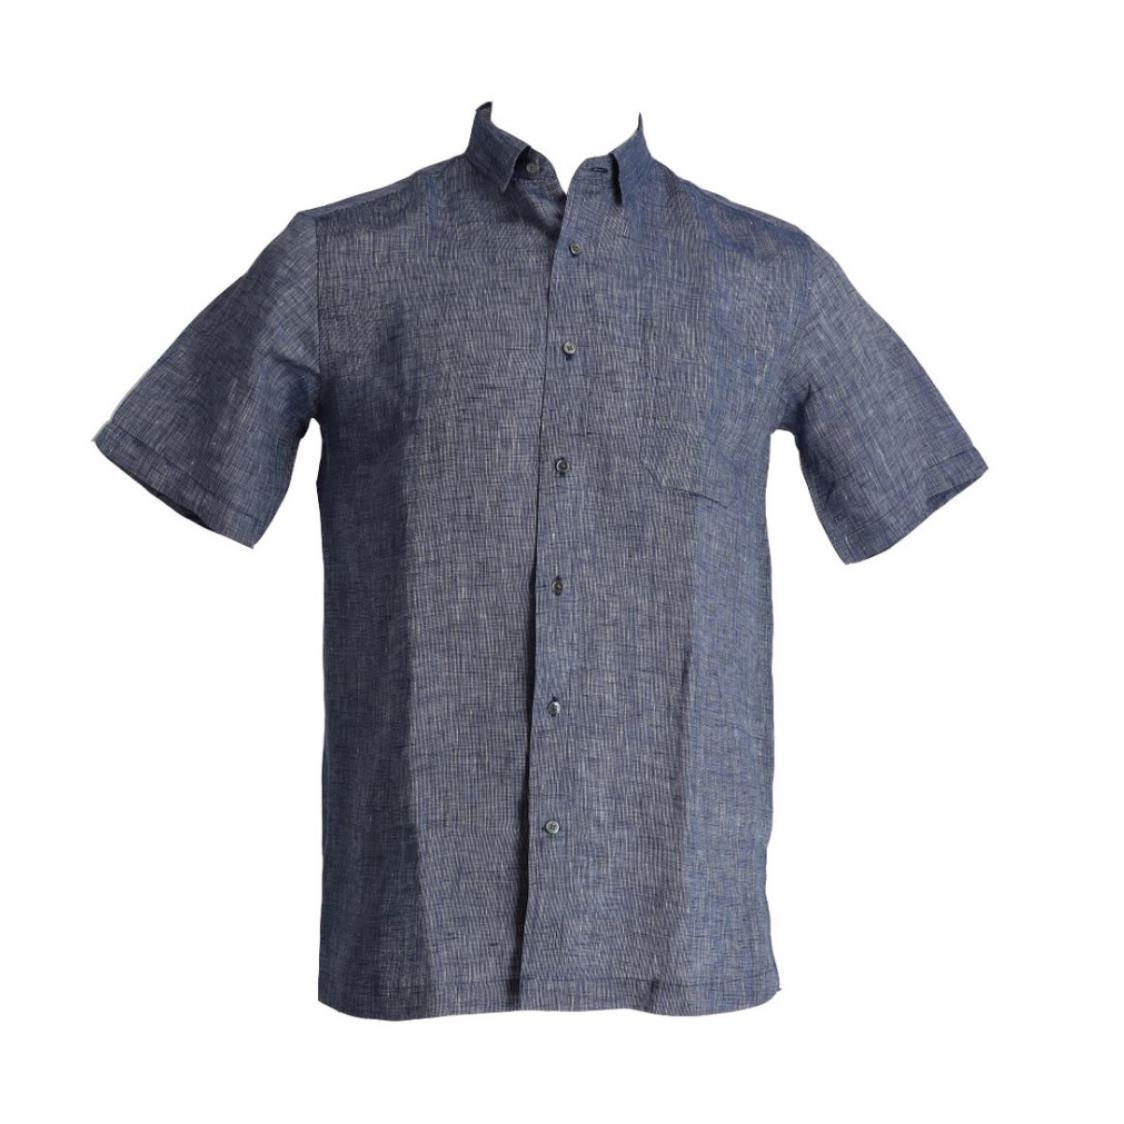 Mens 100 European Linen Short Sleeve Tailored Fit Shirt With Contrast Collar Lining Navy